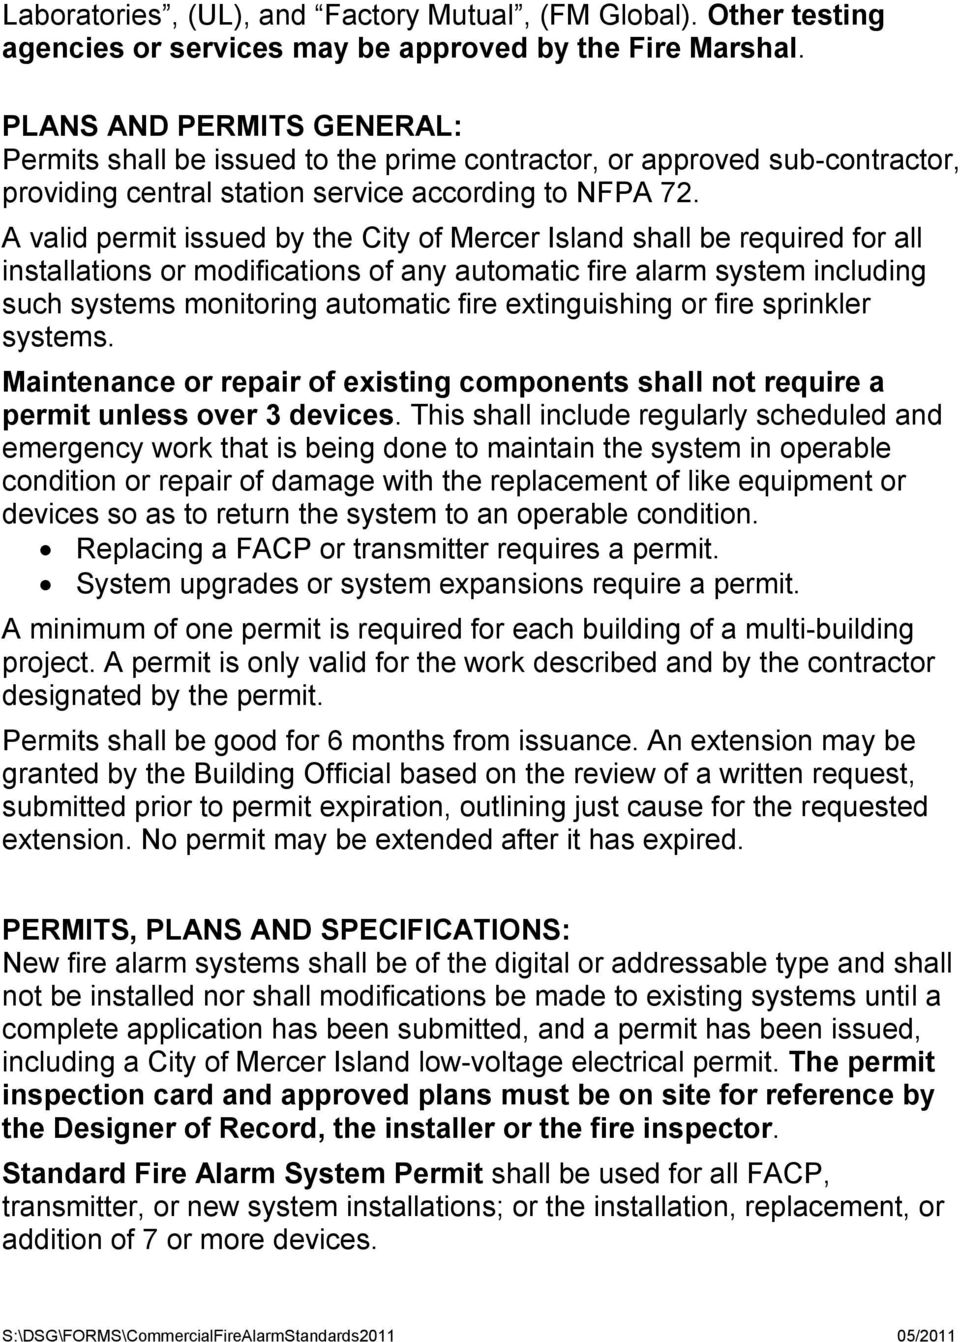 A valid permit issued by the City of Mercer Island shall be required for all installations or modifications of any automatic fire alarm system including such systems monitoring automatic fire